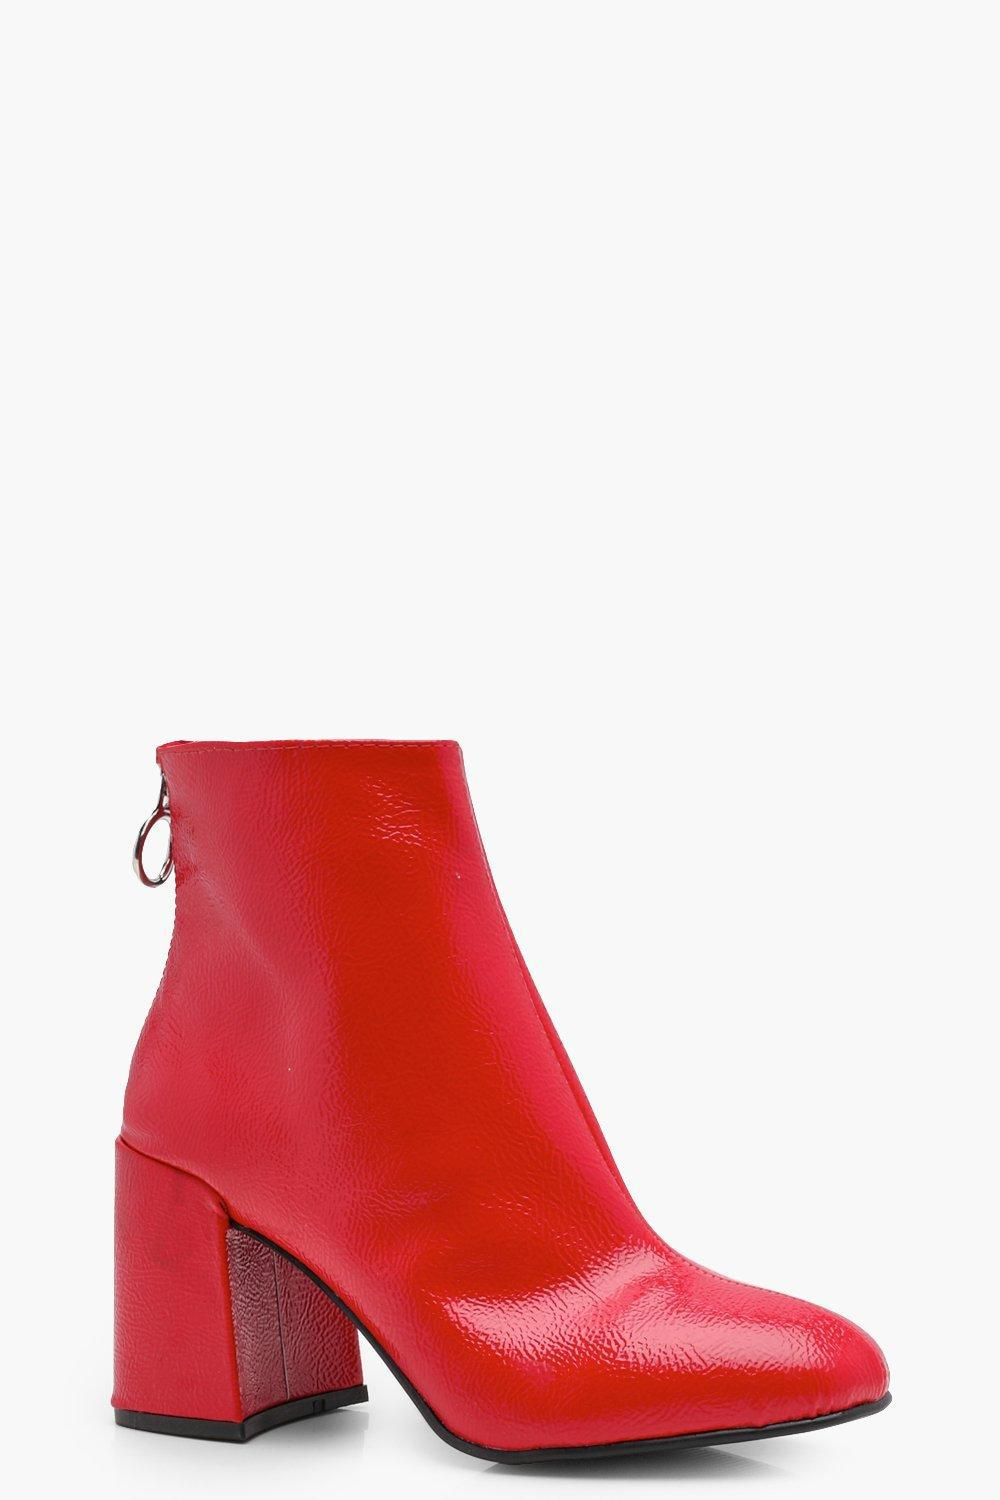 a2e7fd0d0113 Boohoo Patent Block Heel Ankle Shoe Boots in Red - Lyst